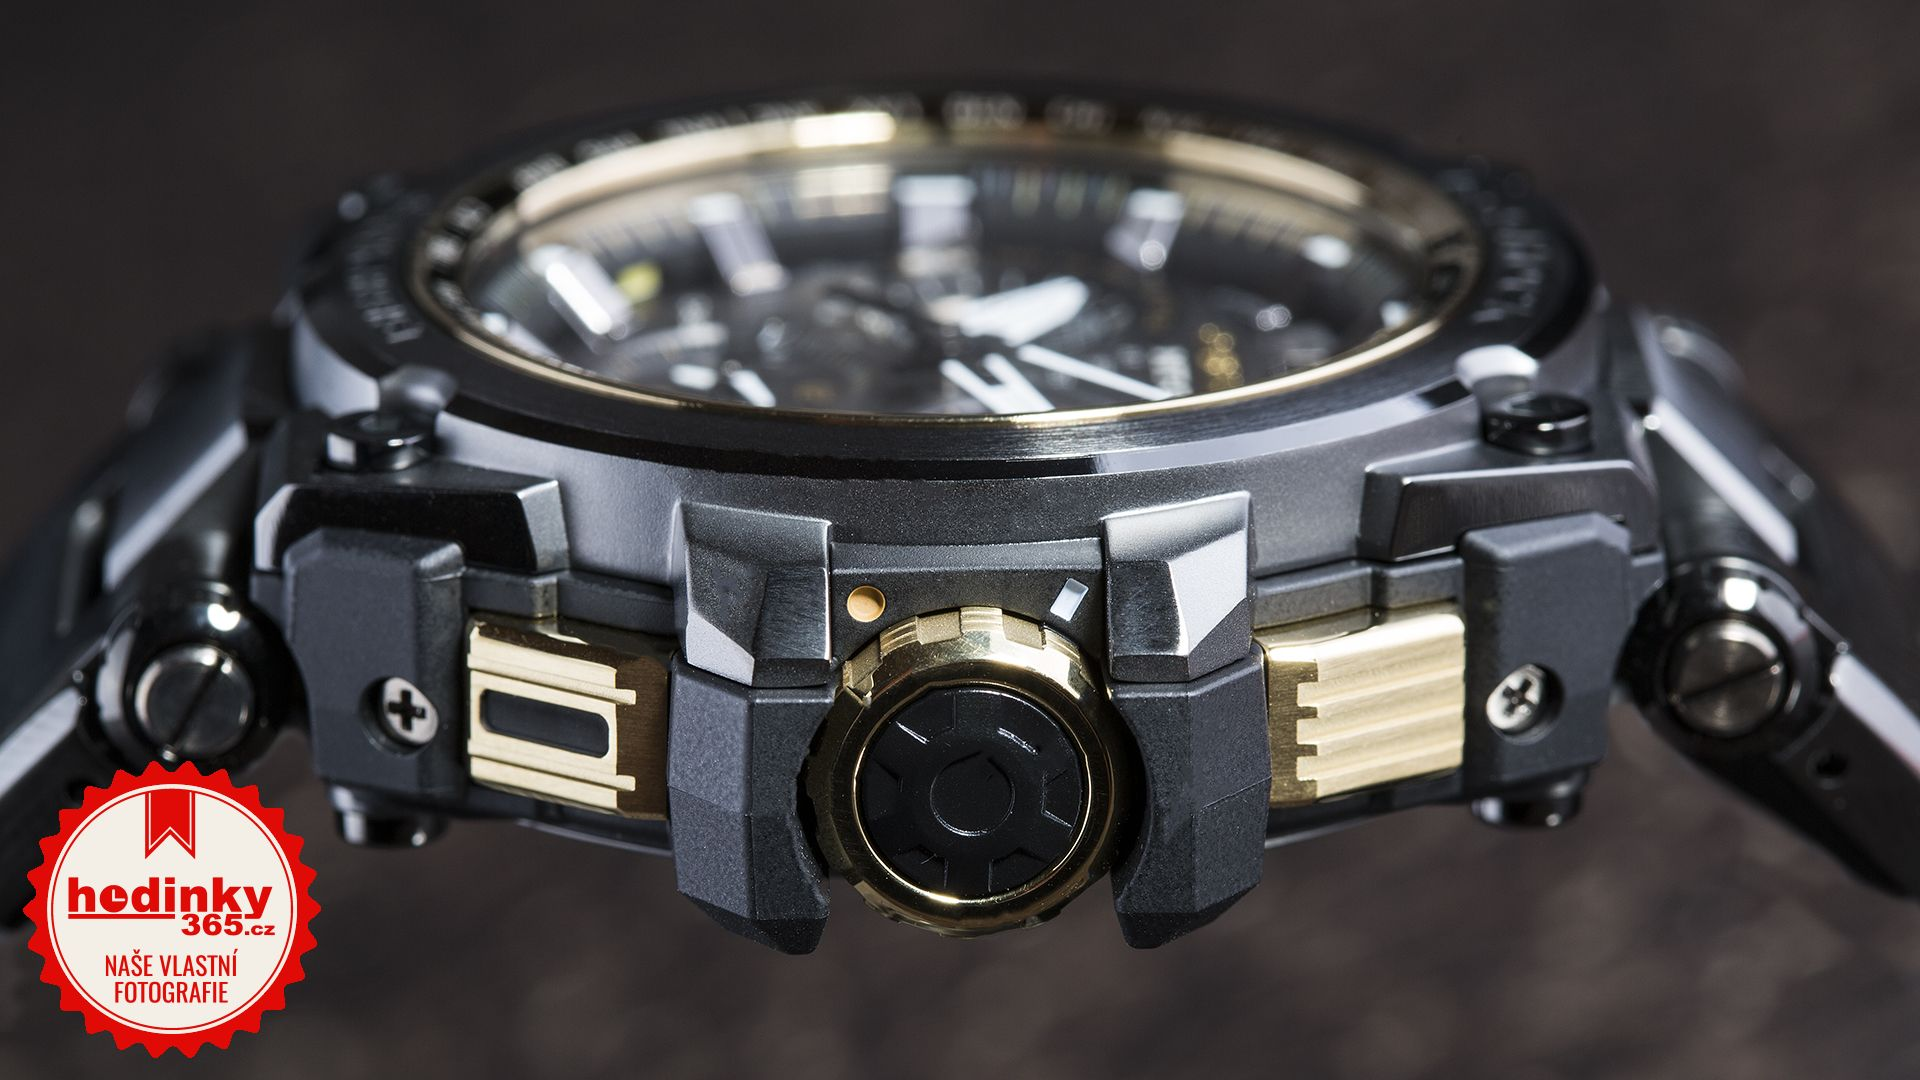 Casio G-Shock MTG-G1000GB-1AER Black   Gold Special Edition ... 3e5c4109d2